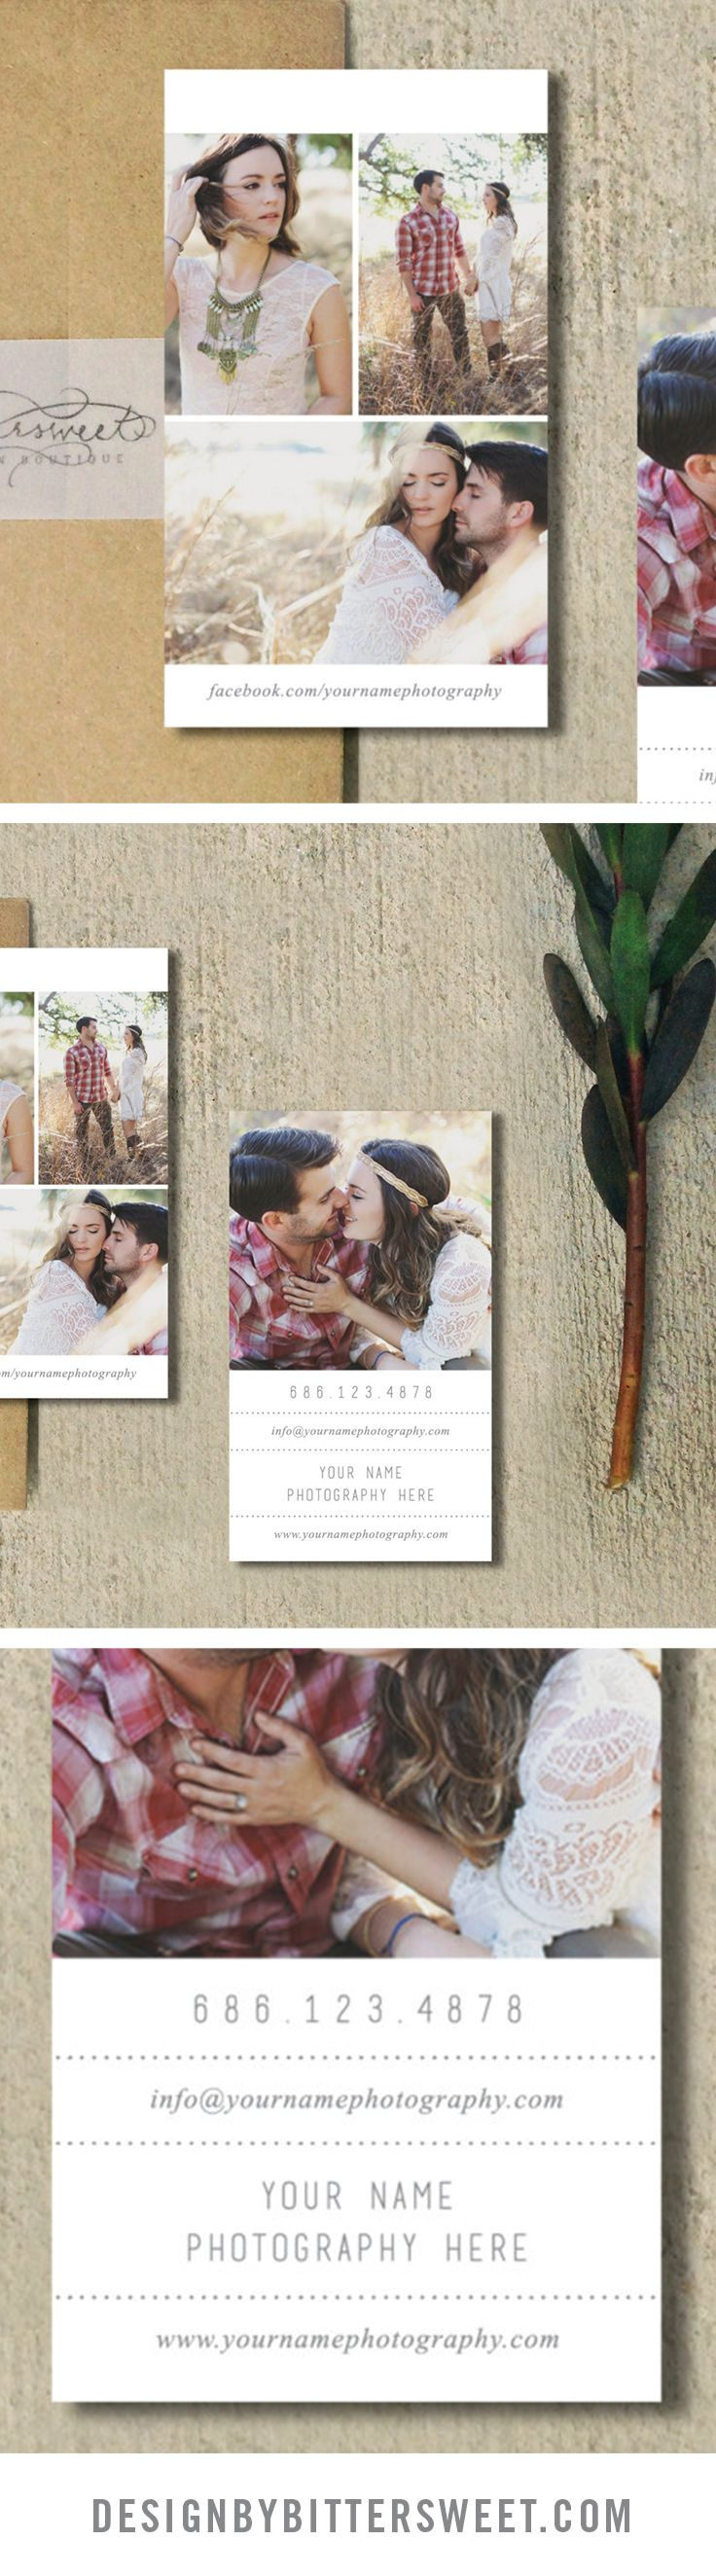 best 25 photographer business cards ideas on pinterest